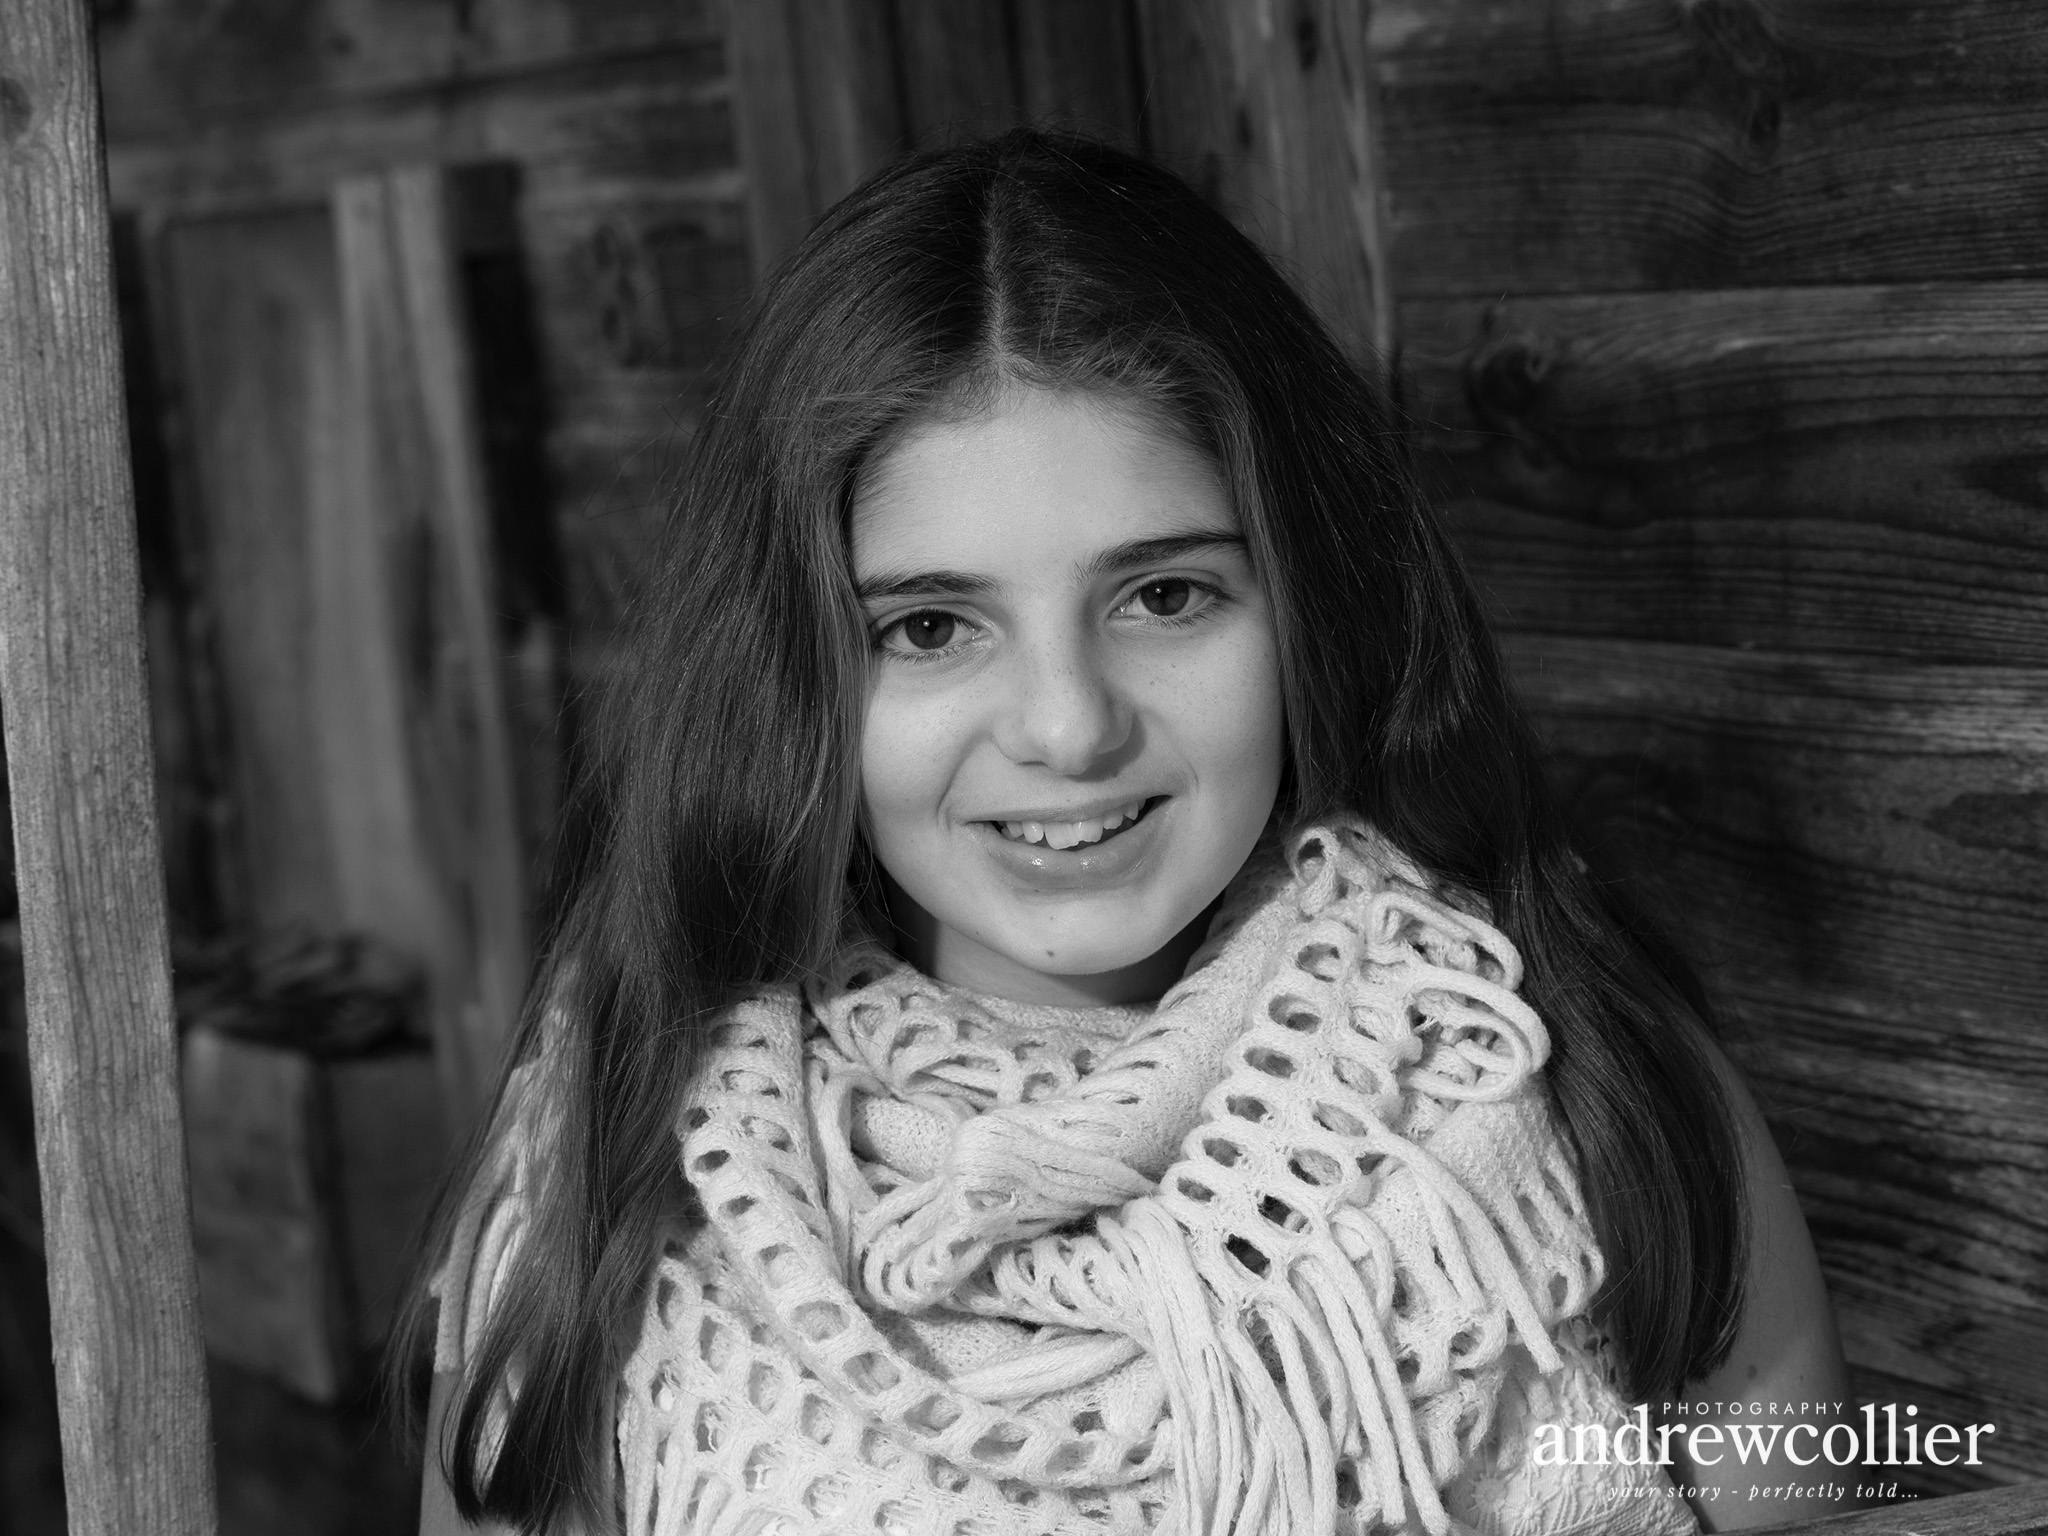 A black and white portrait of a teenaged girl wearing a scarf in Holmes Chapel, Cheshire